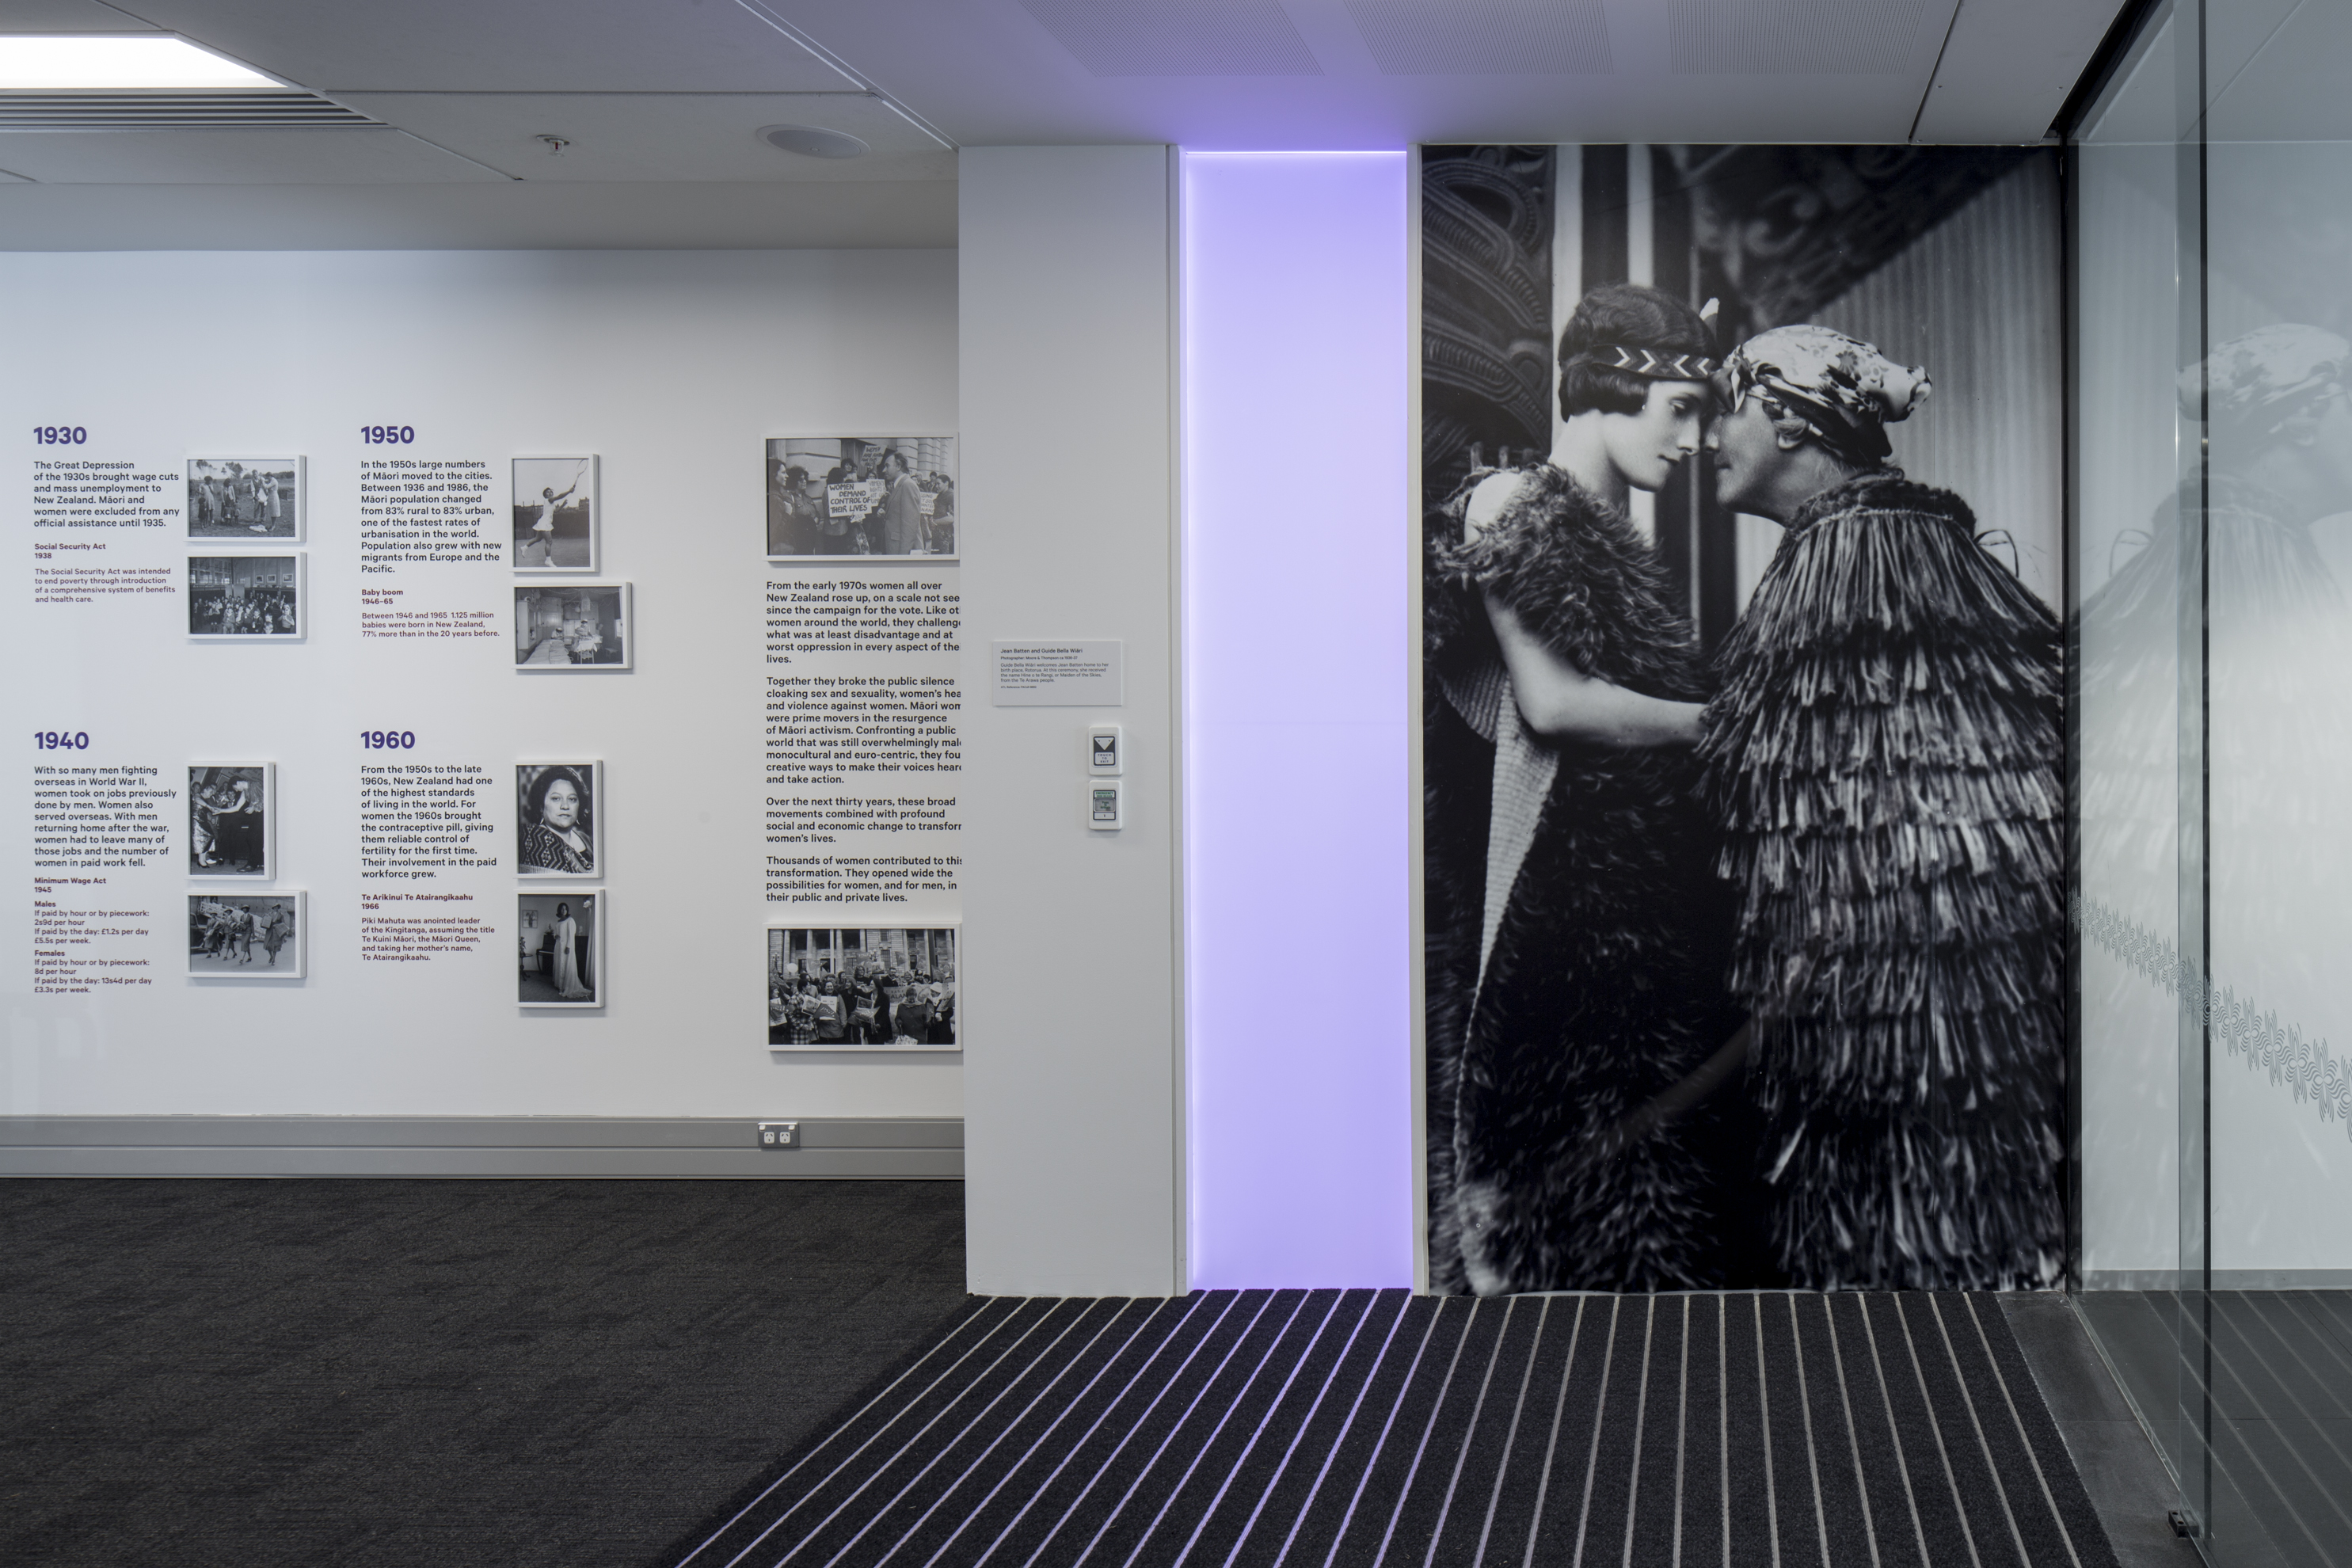 Photograph of an exhibition including a large photograph of Guide Bella greeting Jean Batten.